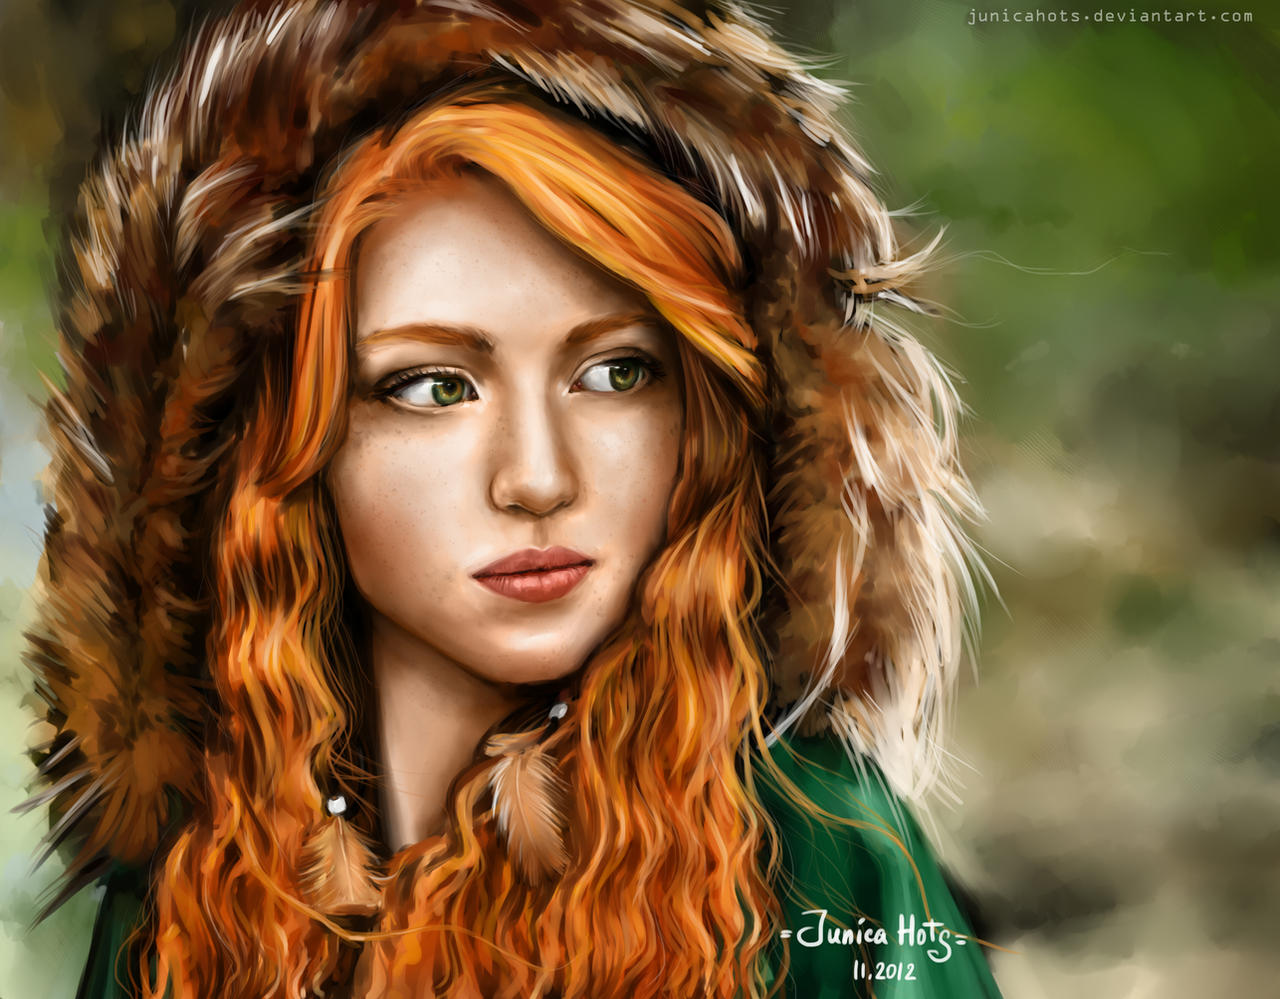 Redhead Girl By Junica Hots On Deviantart